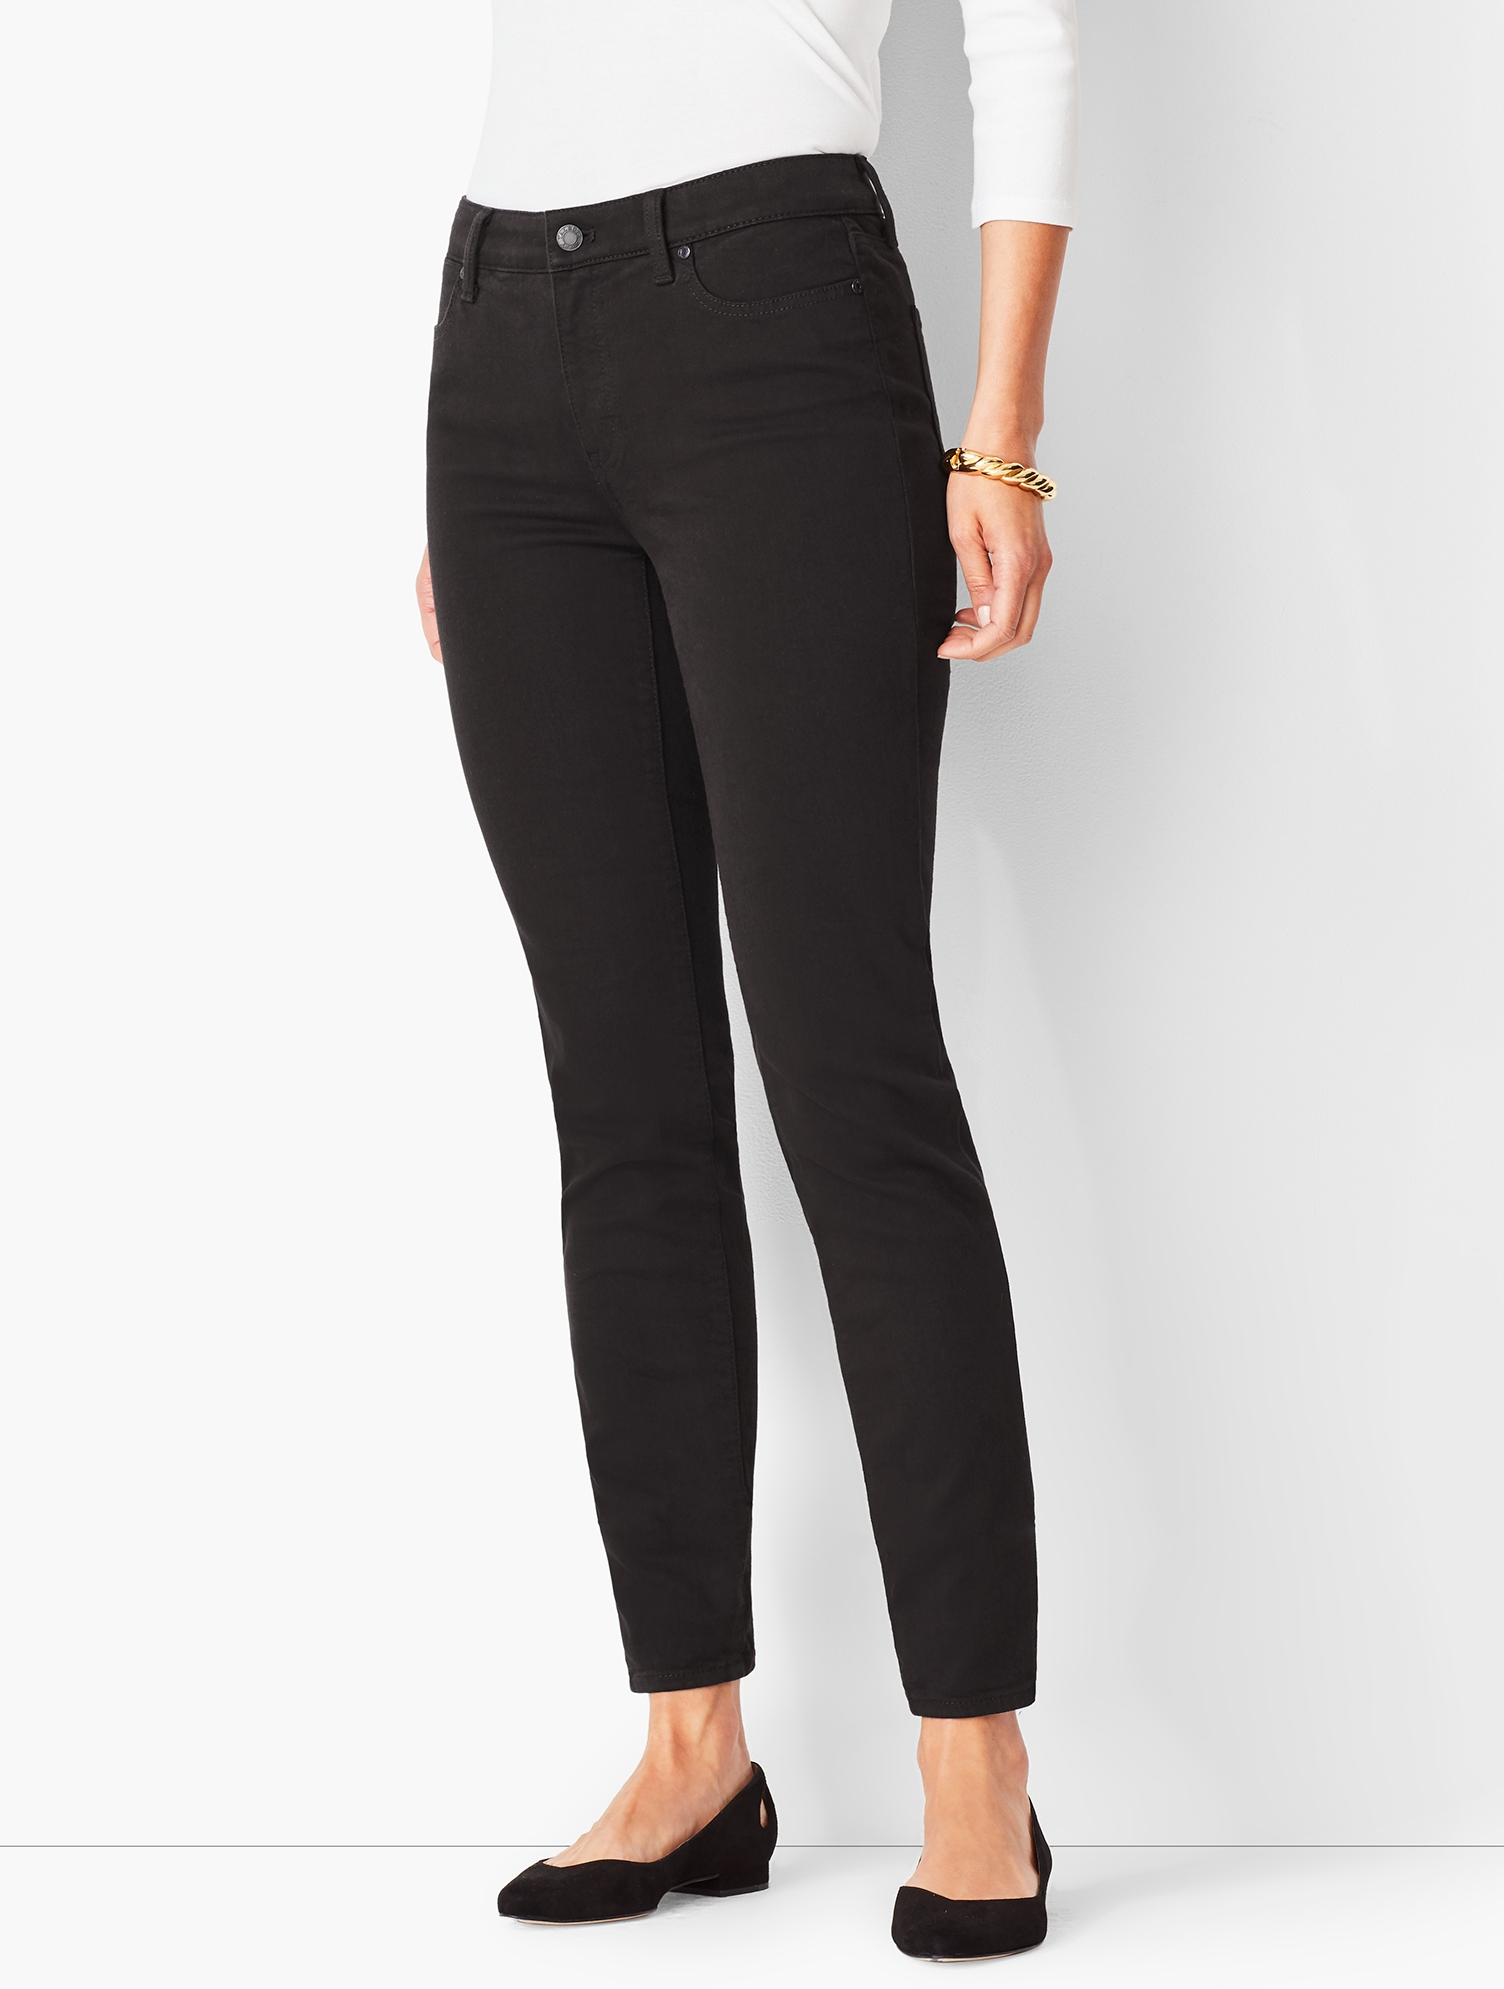 Our classic black denim is now completely fade-resistant, retaining its true color, wash after wash. Designed to lift, smooth and sculpt, these never-fade black jeans are a polished alternative to your everyday pair. Crafted from stretch denim, they\\\'re finished with our invisible slimming panel for the perfect, most flattering fit. Pair with a solid, stripe or statement tee for a casual look with style in no time. If you have an hourglass figure, check out our Slim Ankle Jeans - Curvy Fit- Black